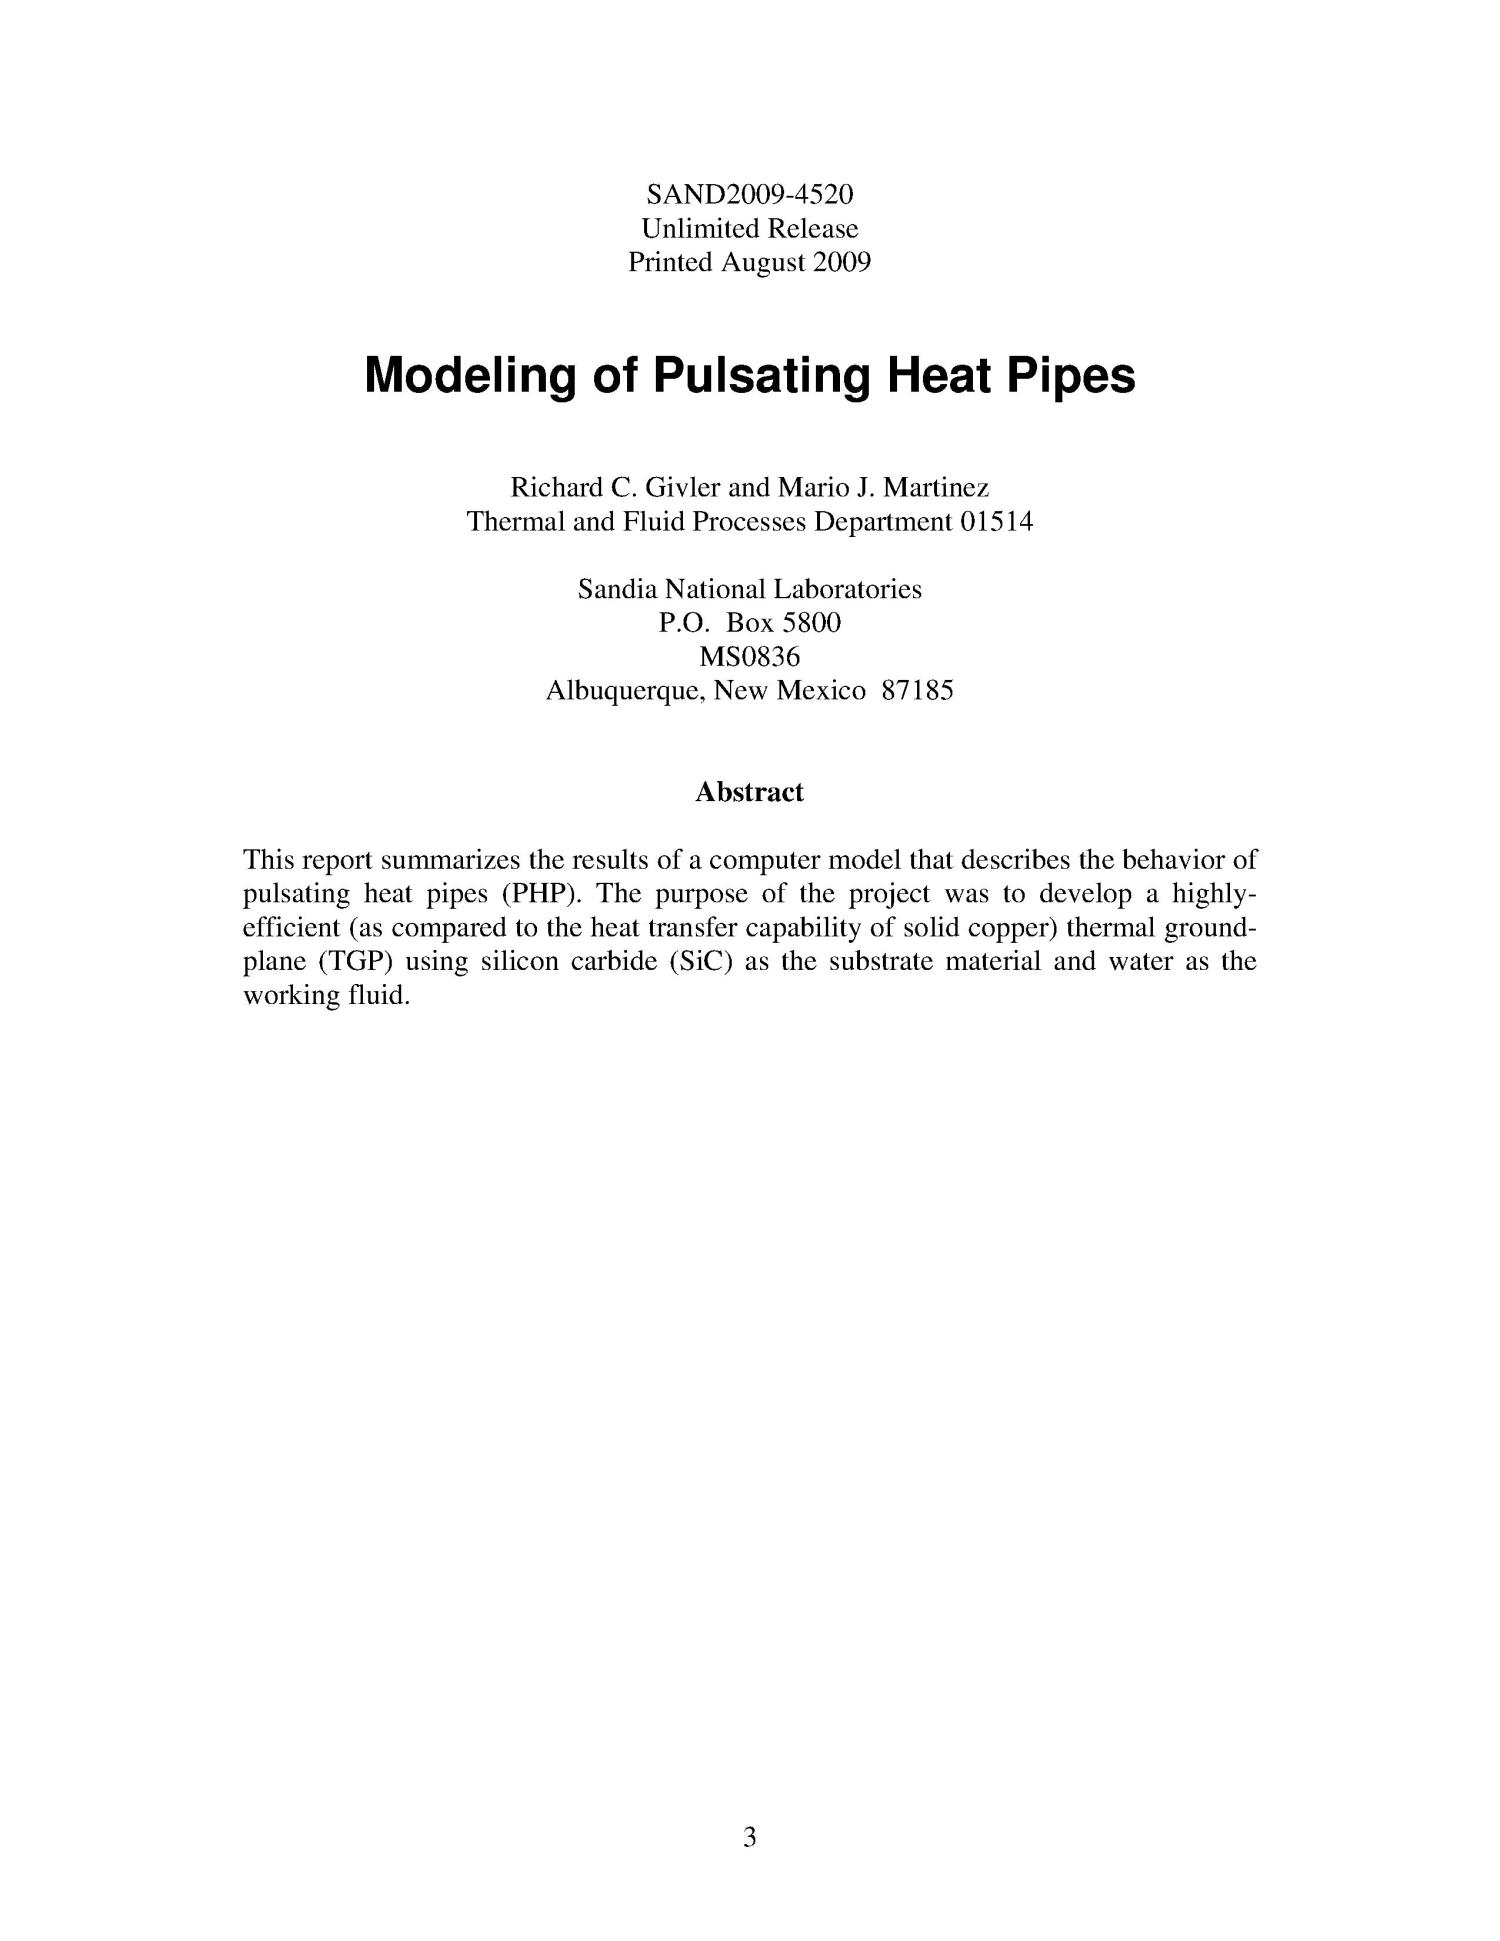 Modeling of pulsating heat pipes.                                                                                                      [Sequence #]: 3 of 33